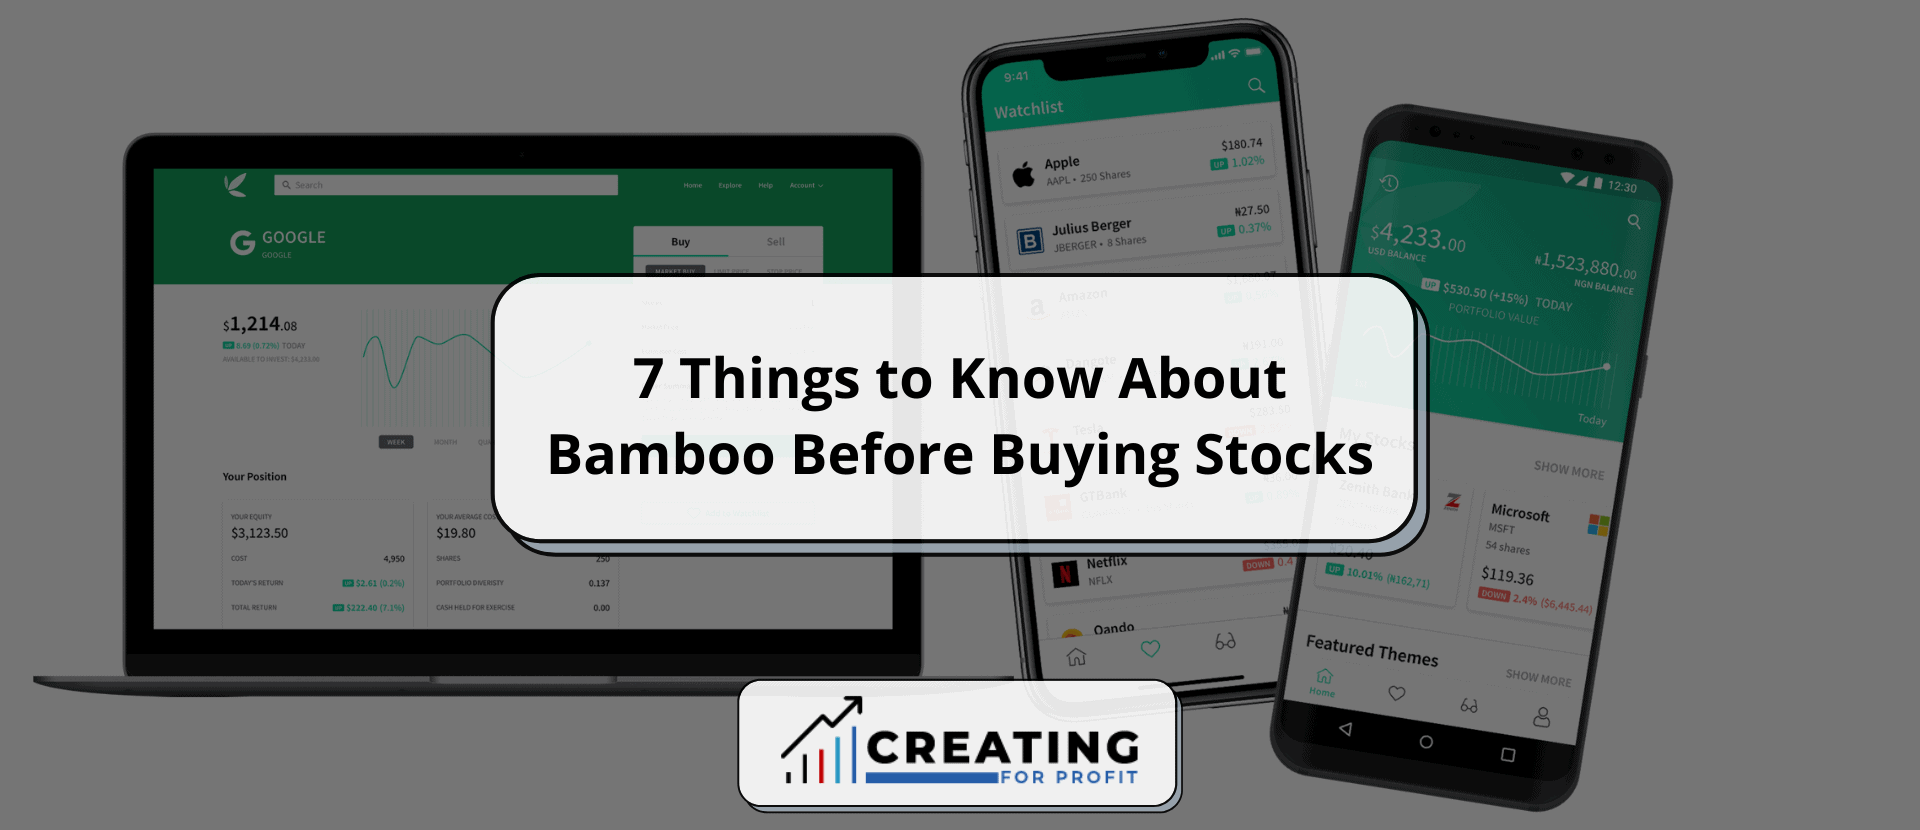 7 Things to Know About Bamboo Before Buying Stocks